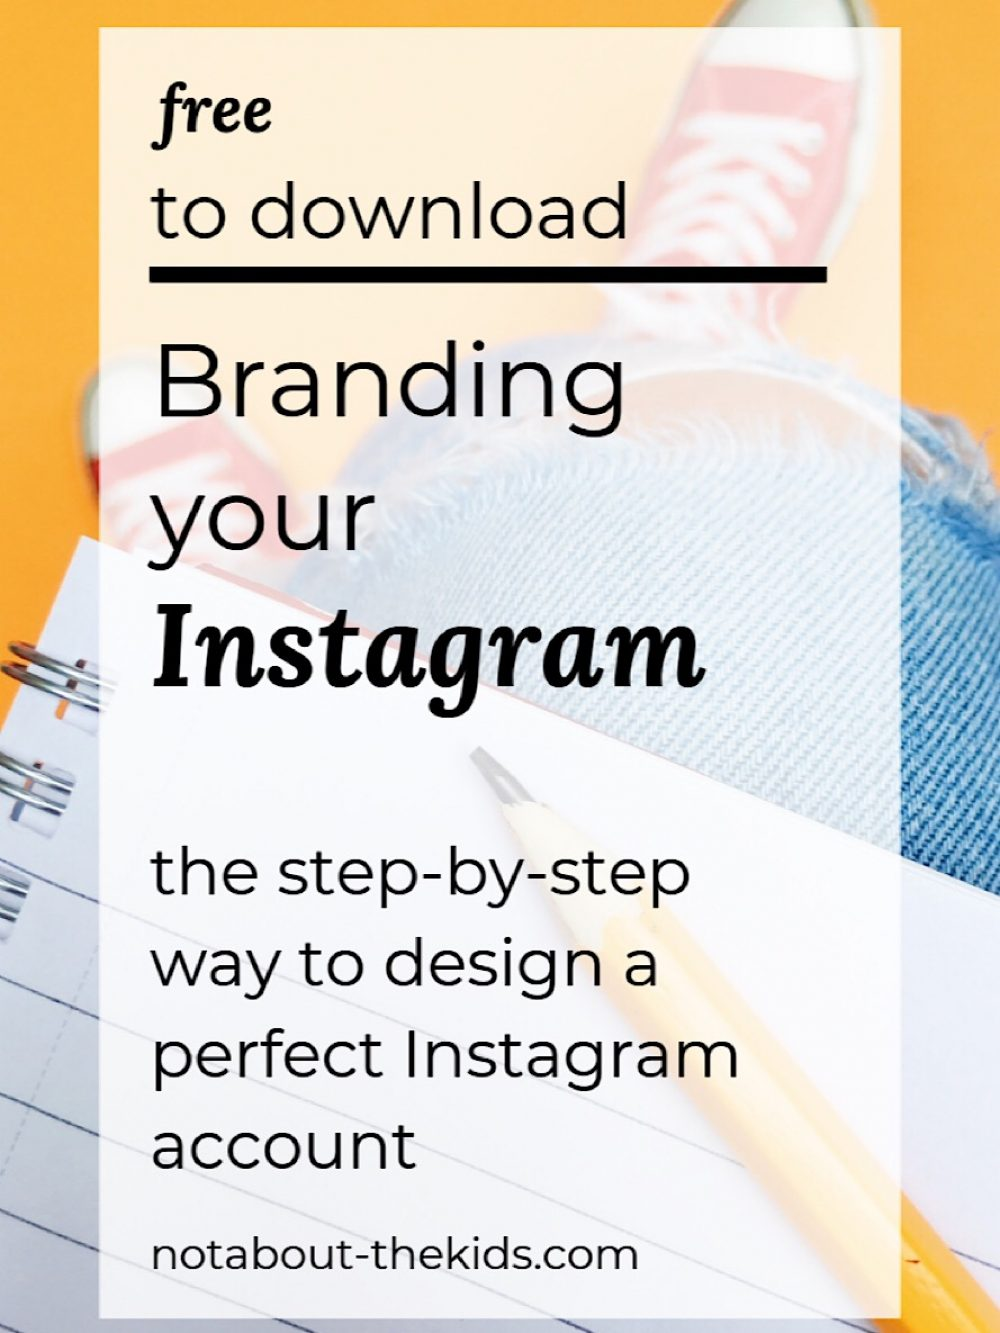 Free downloadable resources to help make your Instagram awesome